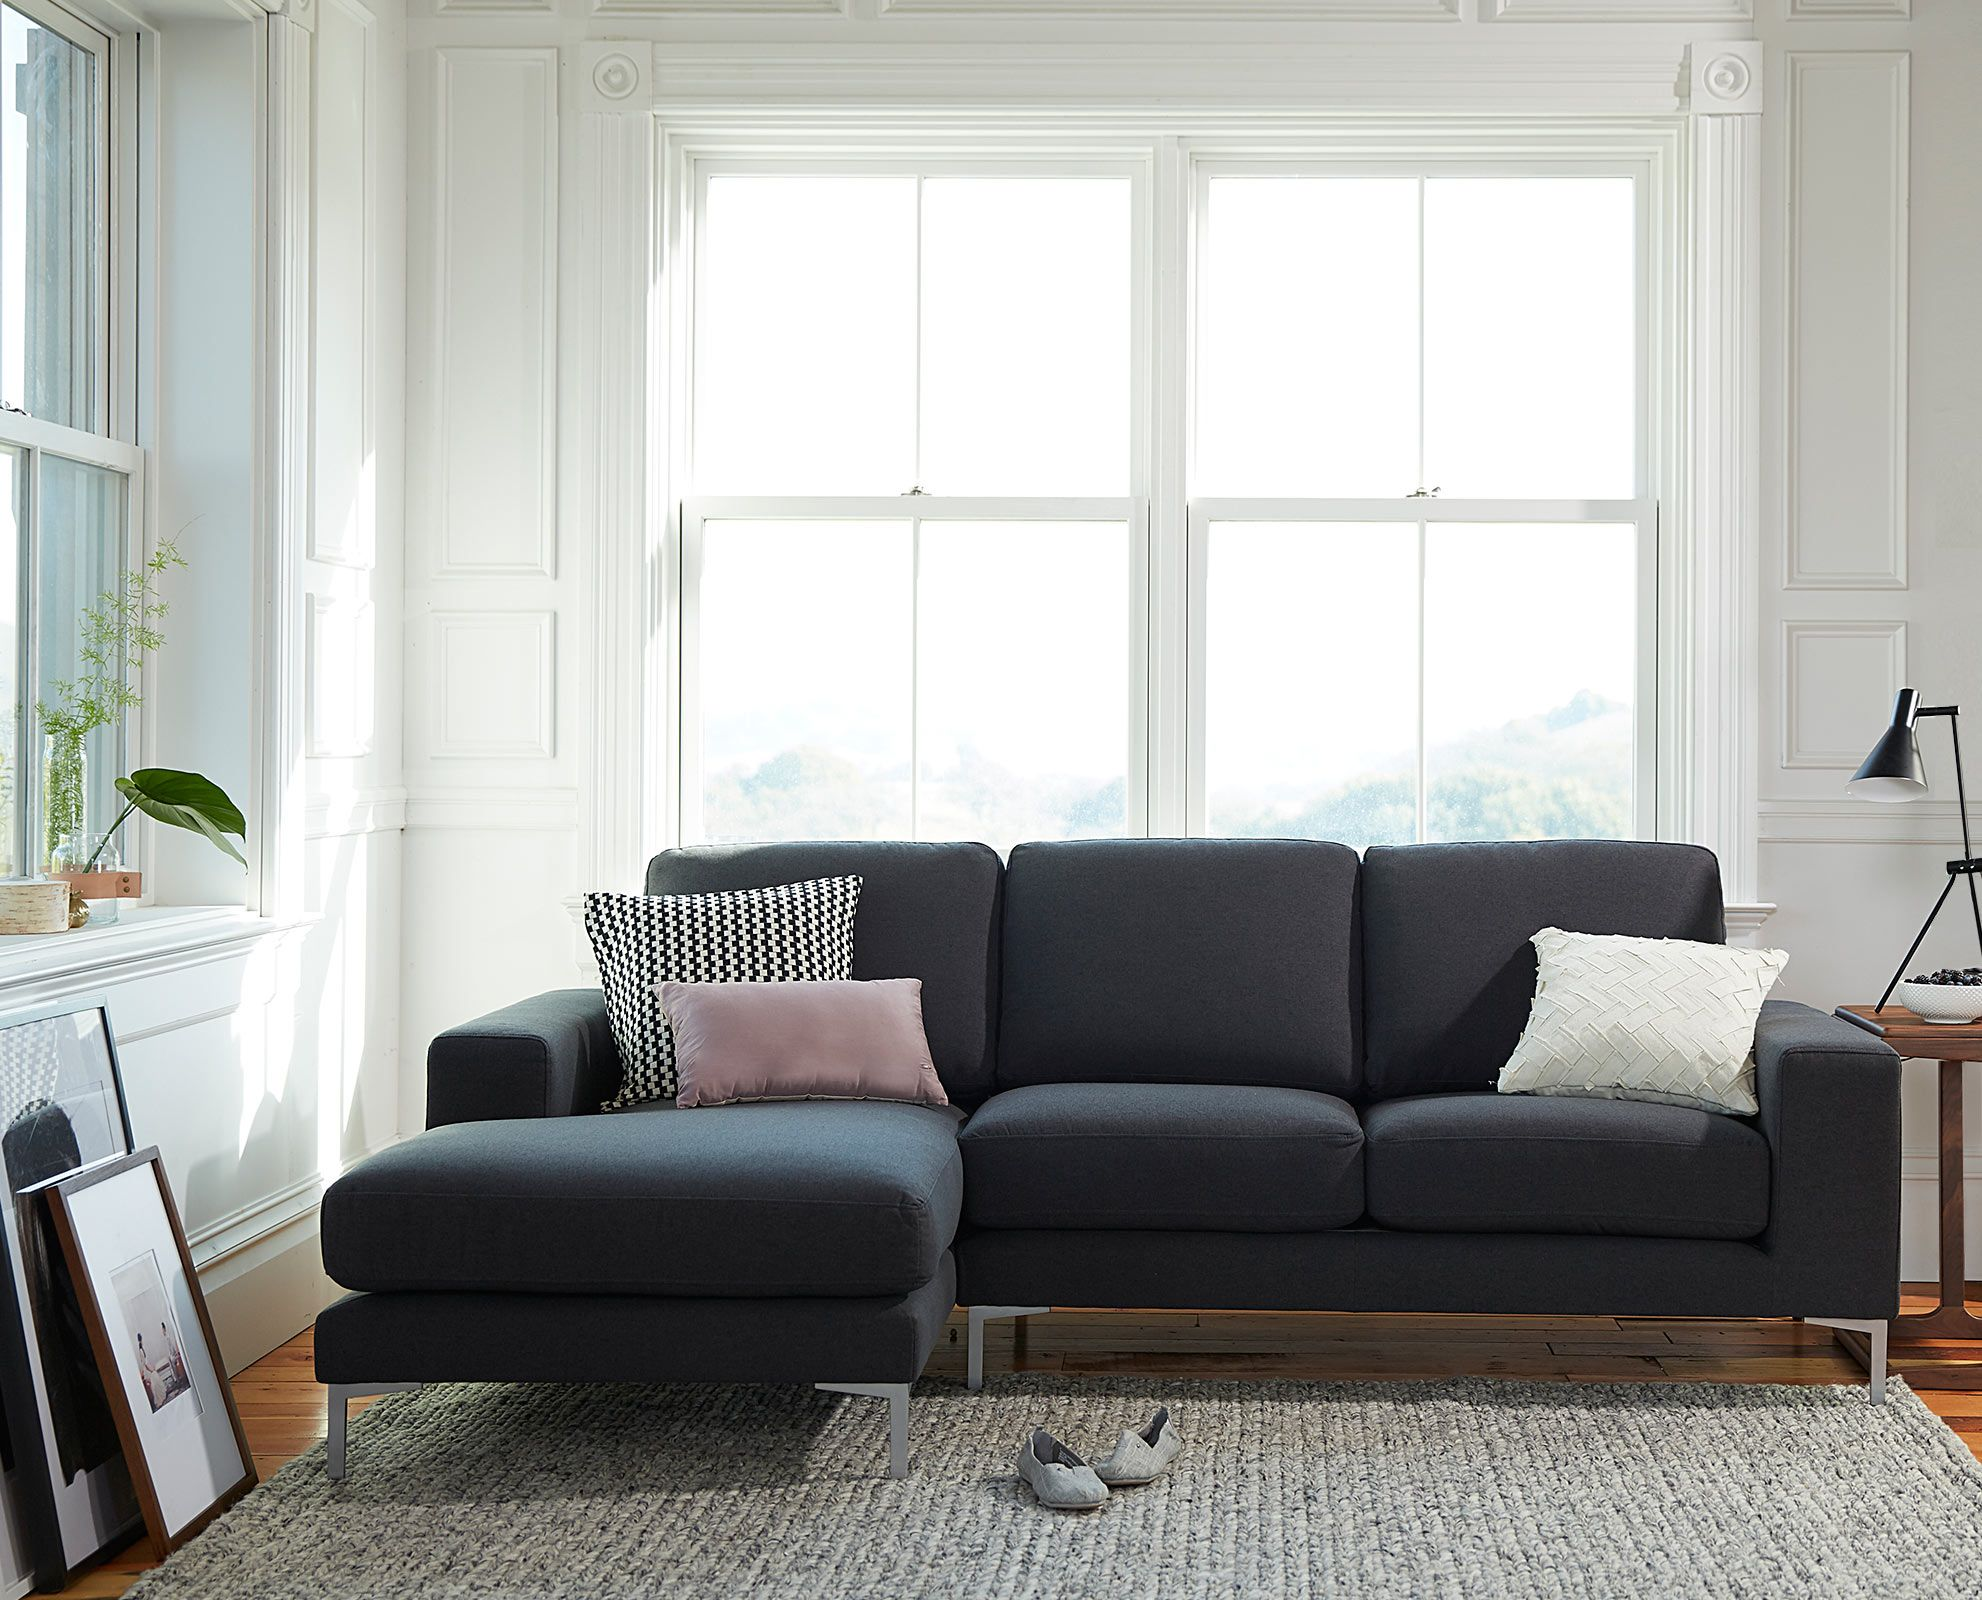 sweet well designed minimalist living room furniture | The Olaf Chaise Sectional from Scandinavian Designs ...